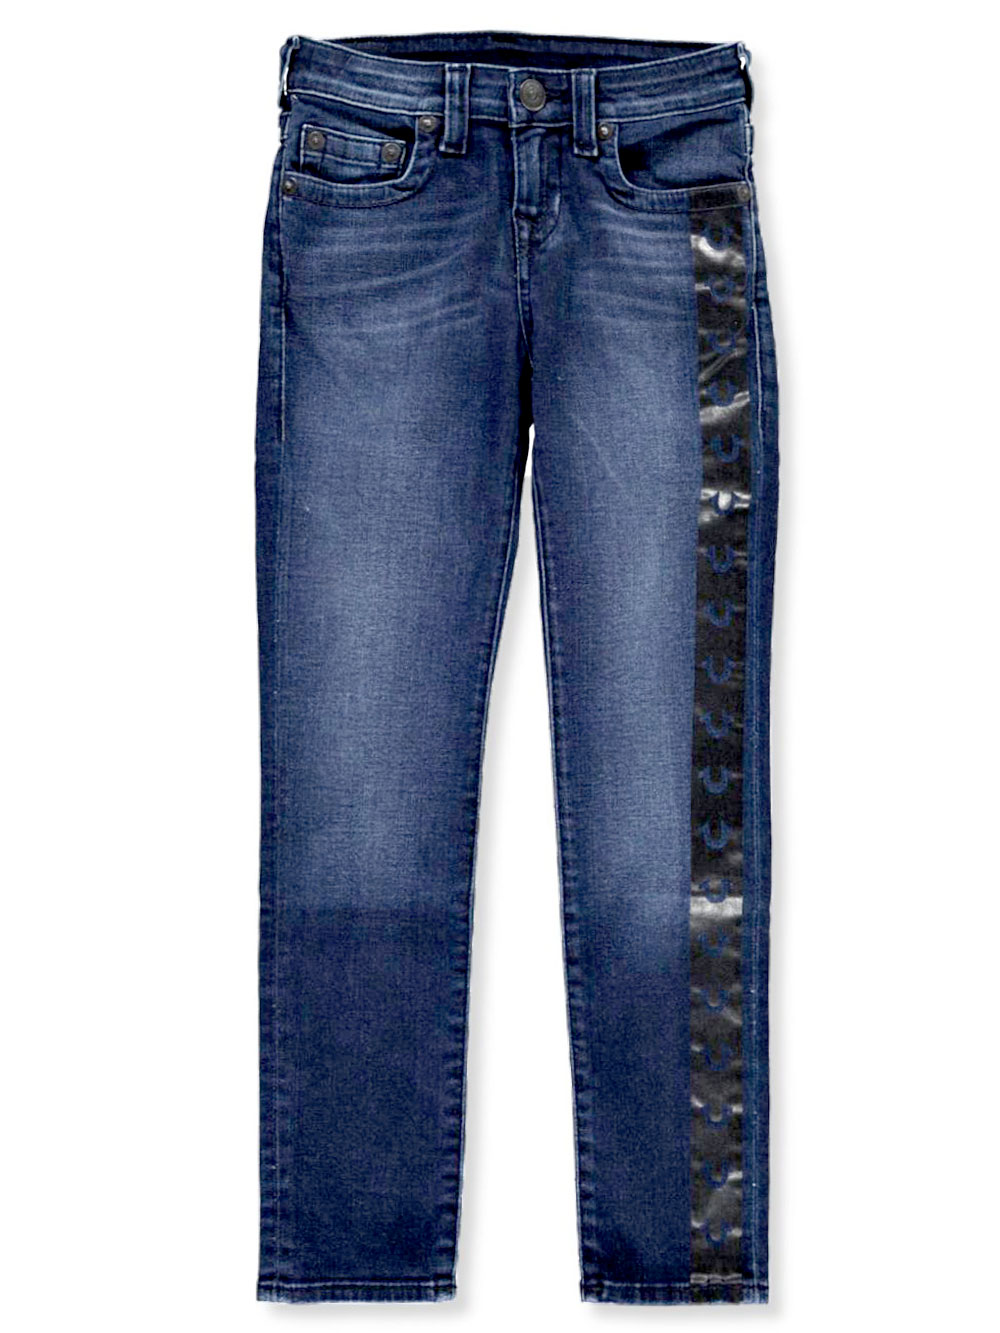 Boys' Leg Stripe Jeans